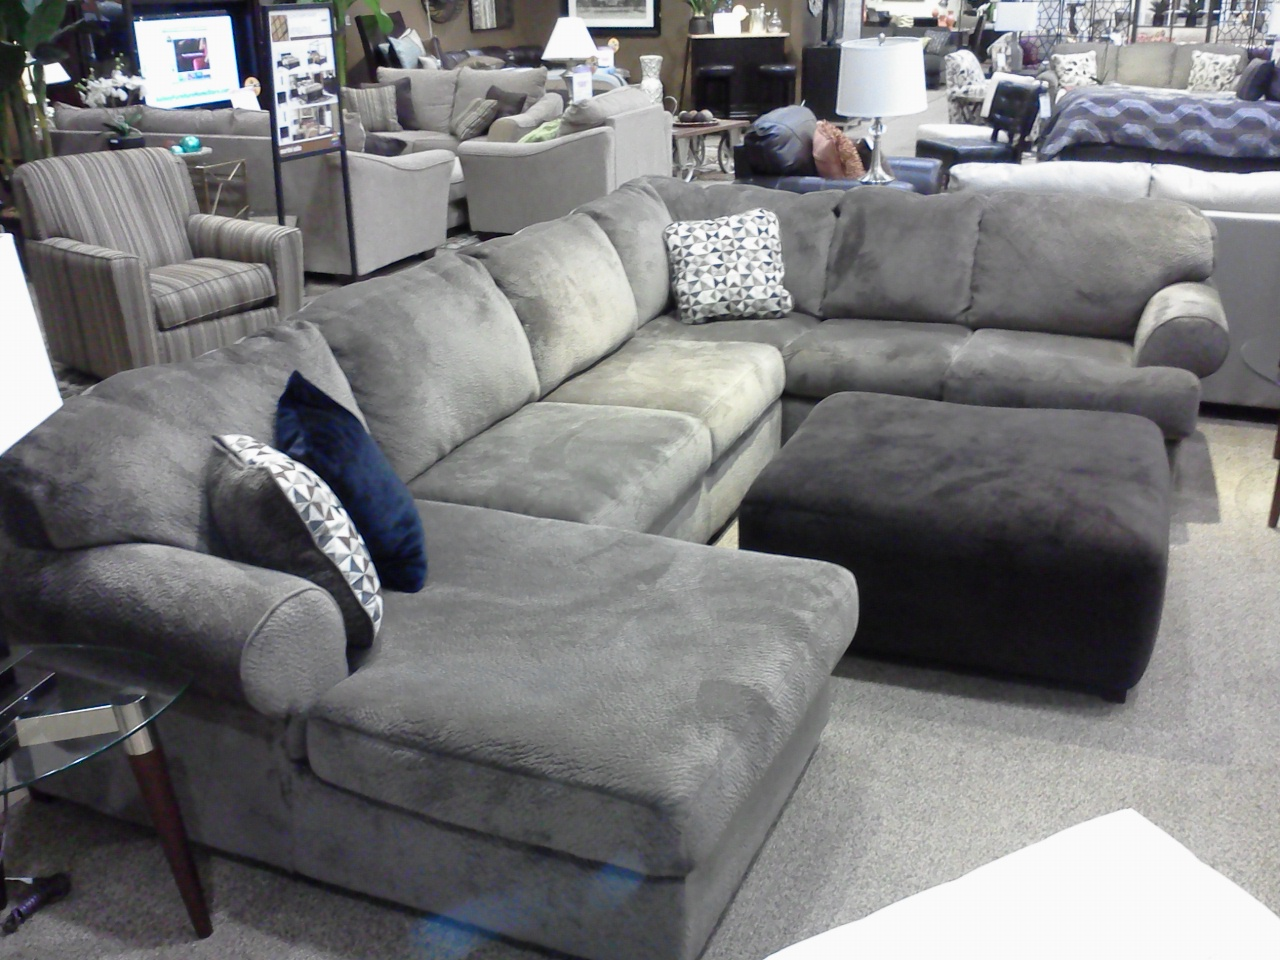 Jessa place 3 piece sectional - Interestingly Enough This Set Looks Similar To Our Current Sectional That We Bought From Haverty S A Few Years Ago Will Be Going In The Family Room